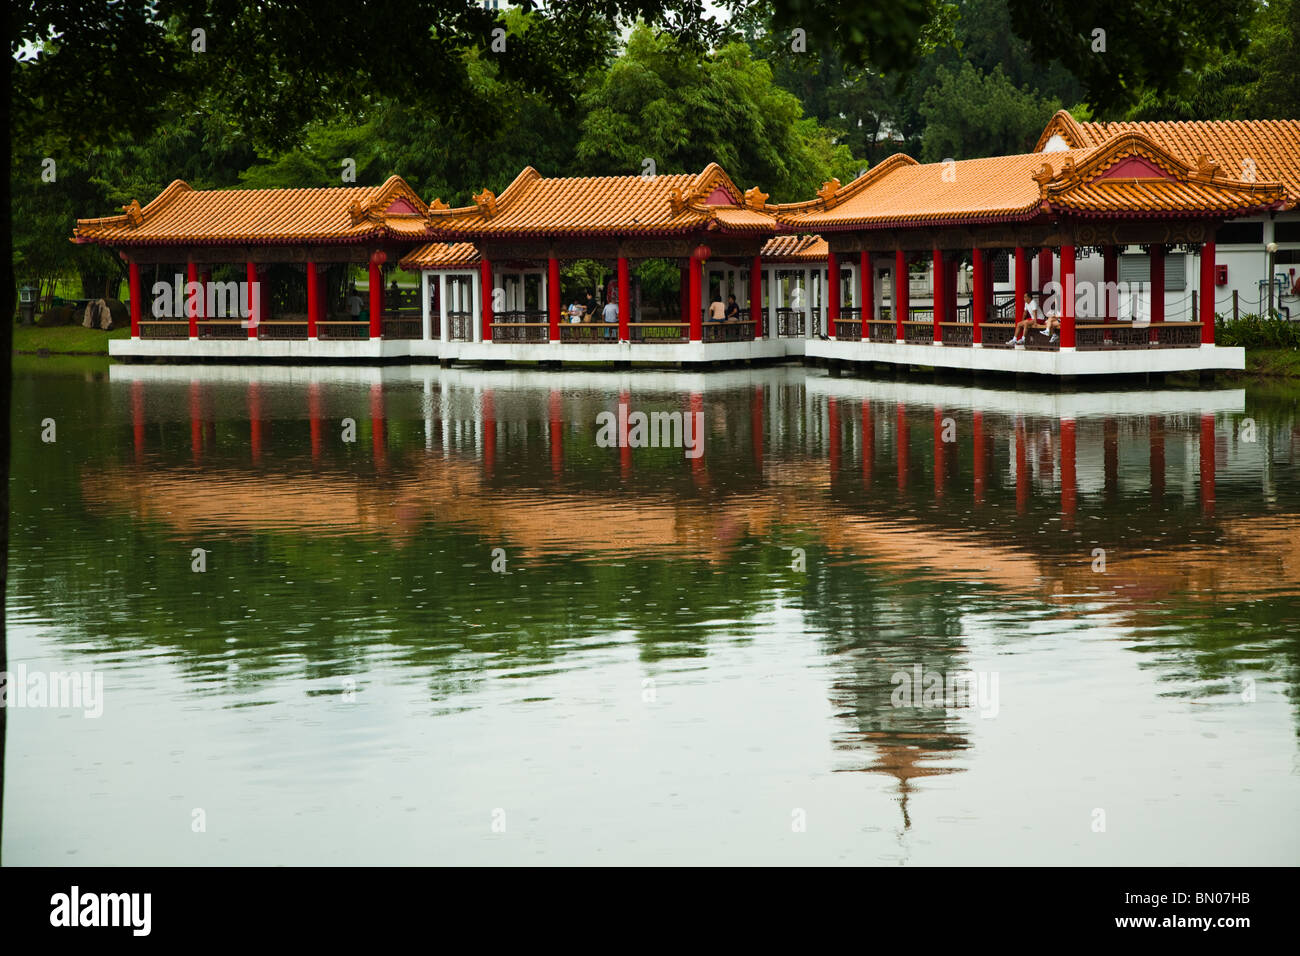 Singapore Chinese Garden's main asset is its integration of architecture with its natural  environment. - Stock Image